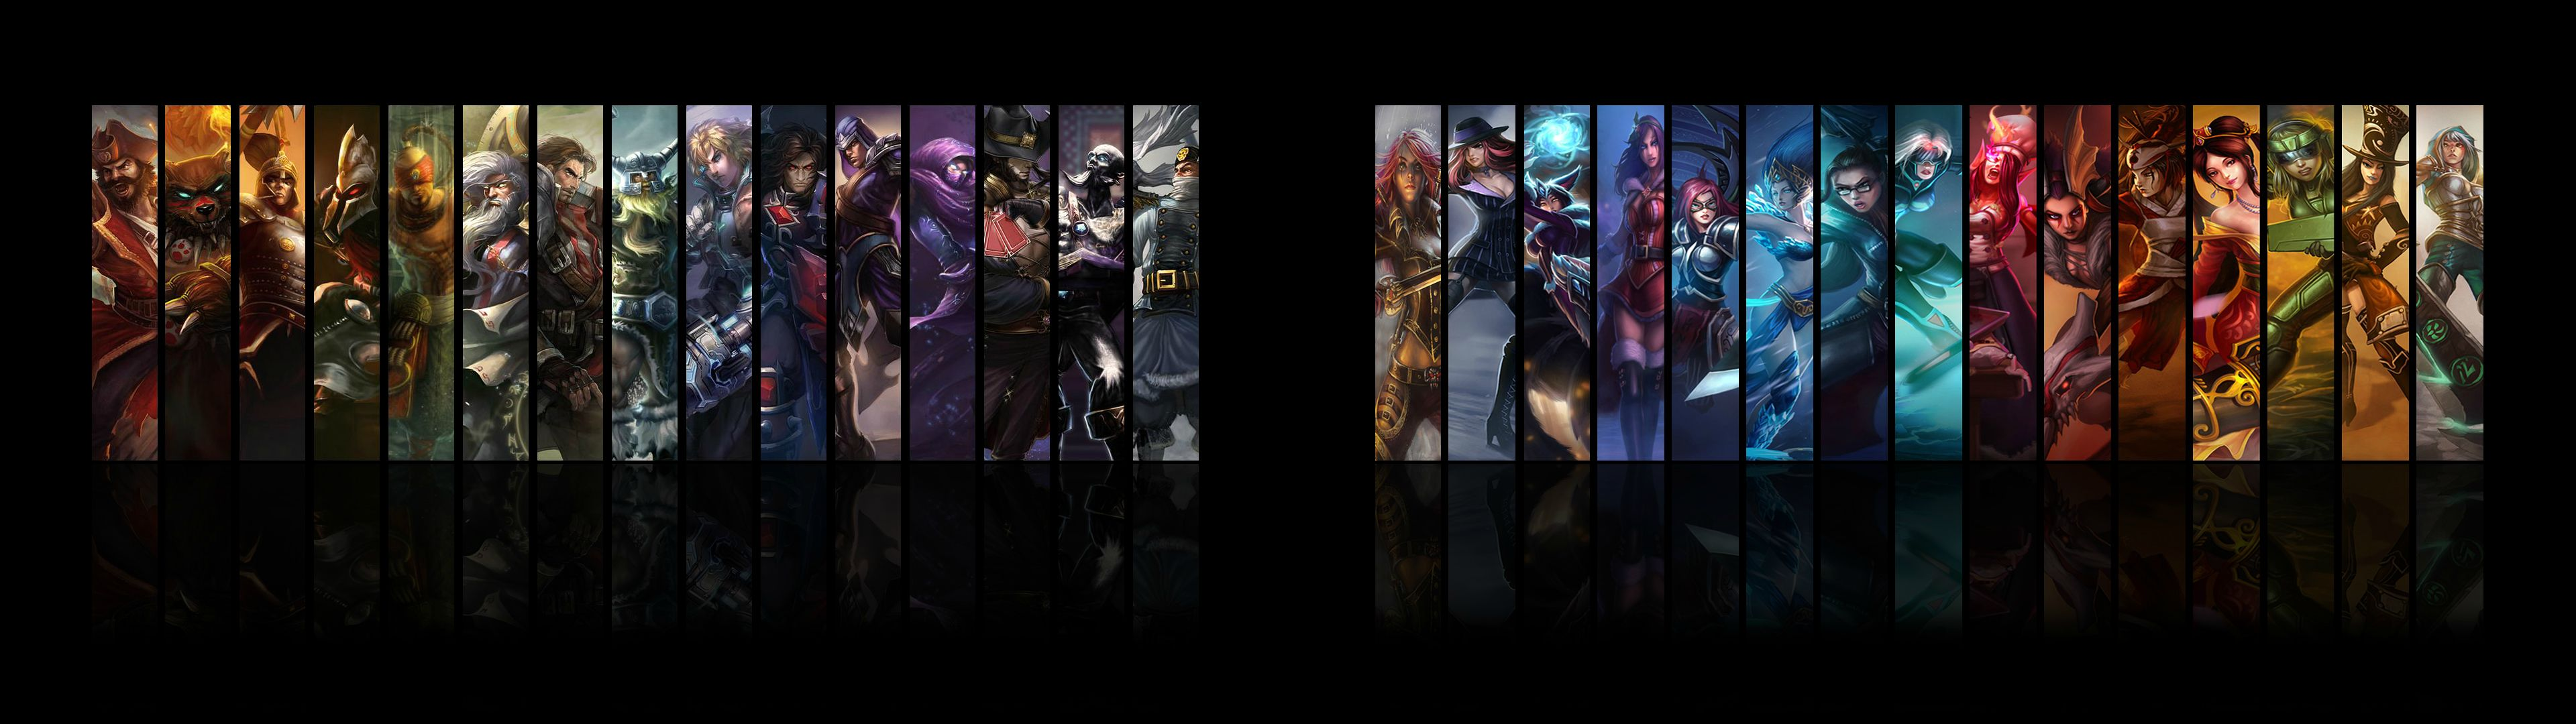 Dual Monitor Wallpaper League Of Legends League Of Legends 2